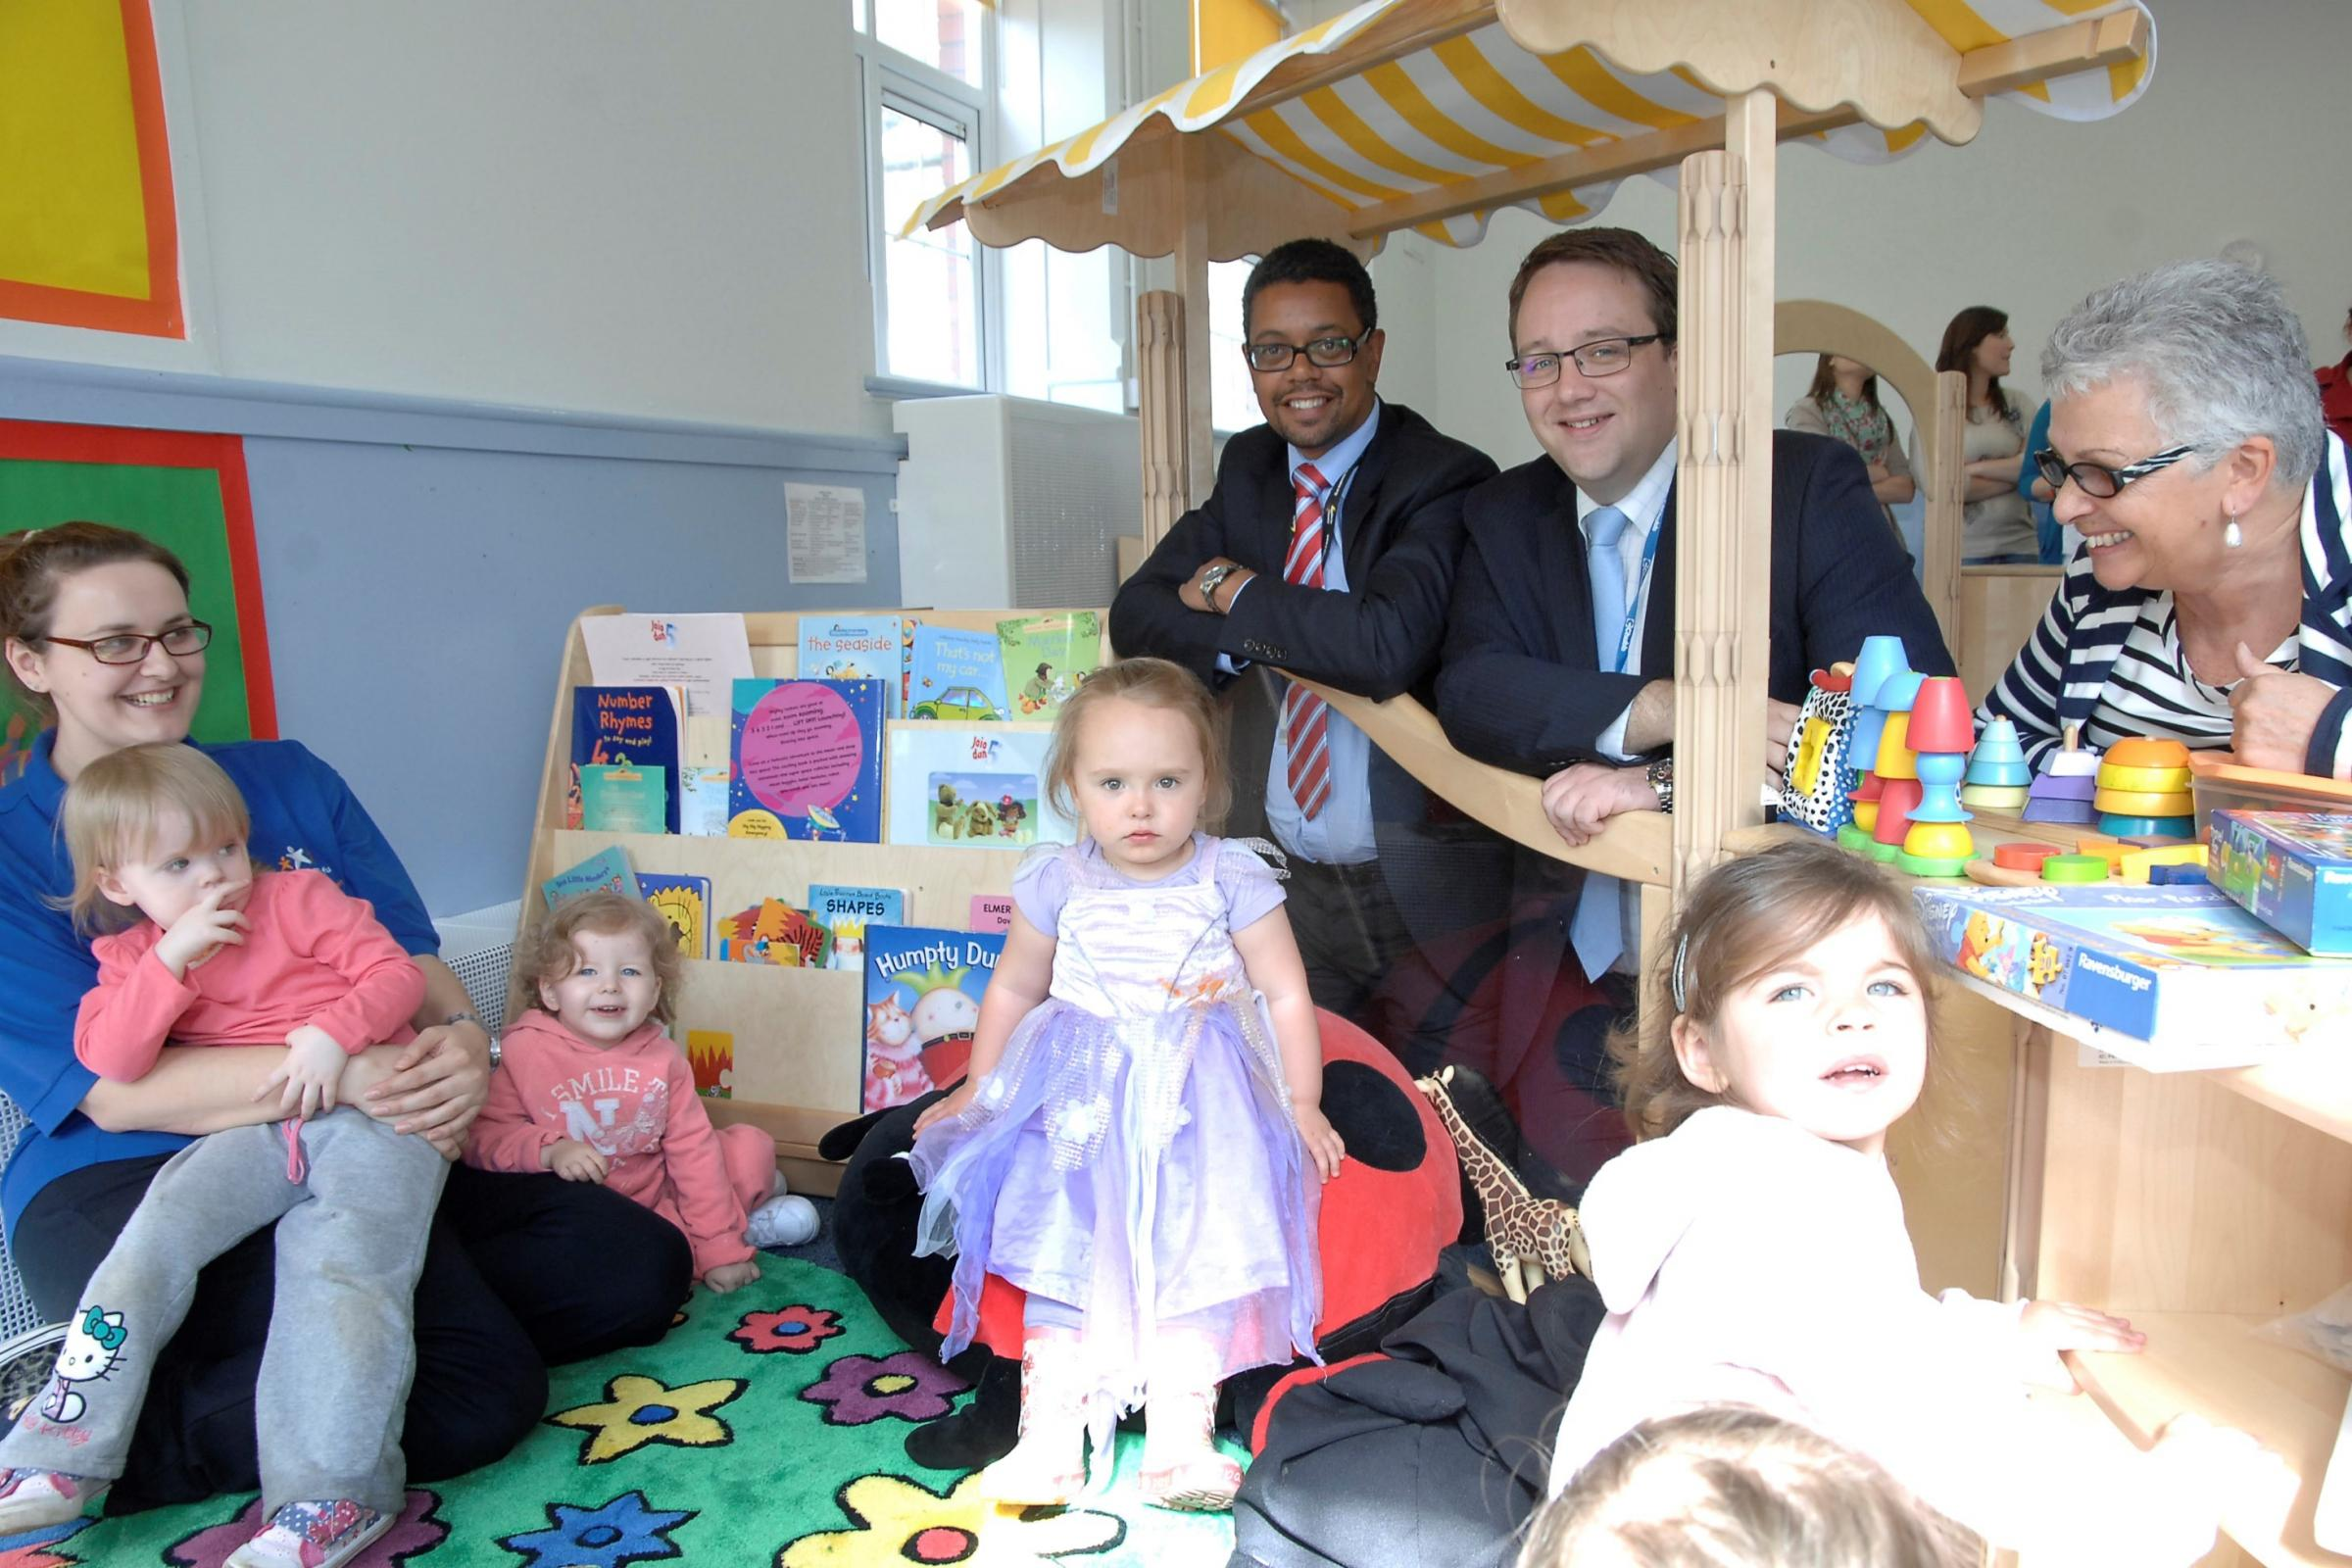 FLYING START: Vaughan Gething AM and Councillor Chris Elmore with staff and children at